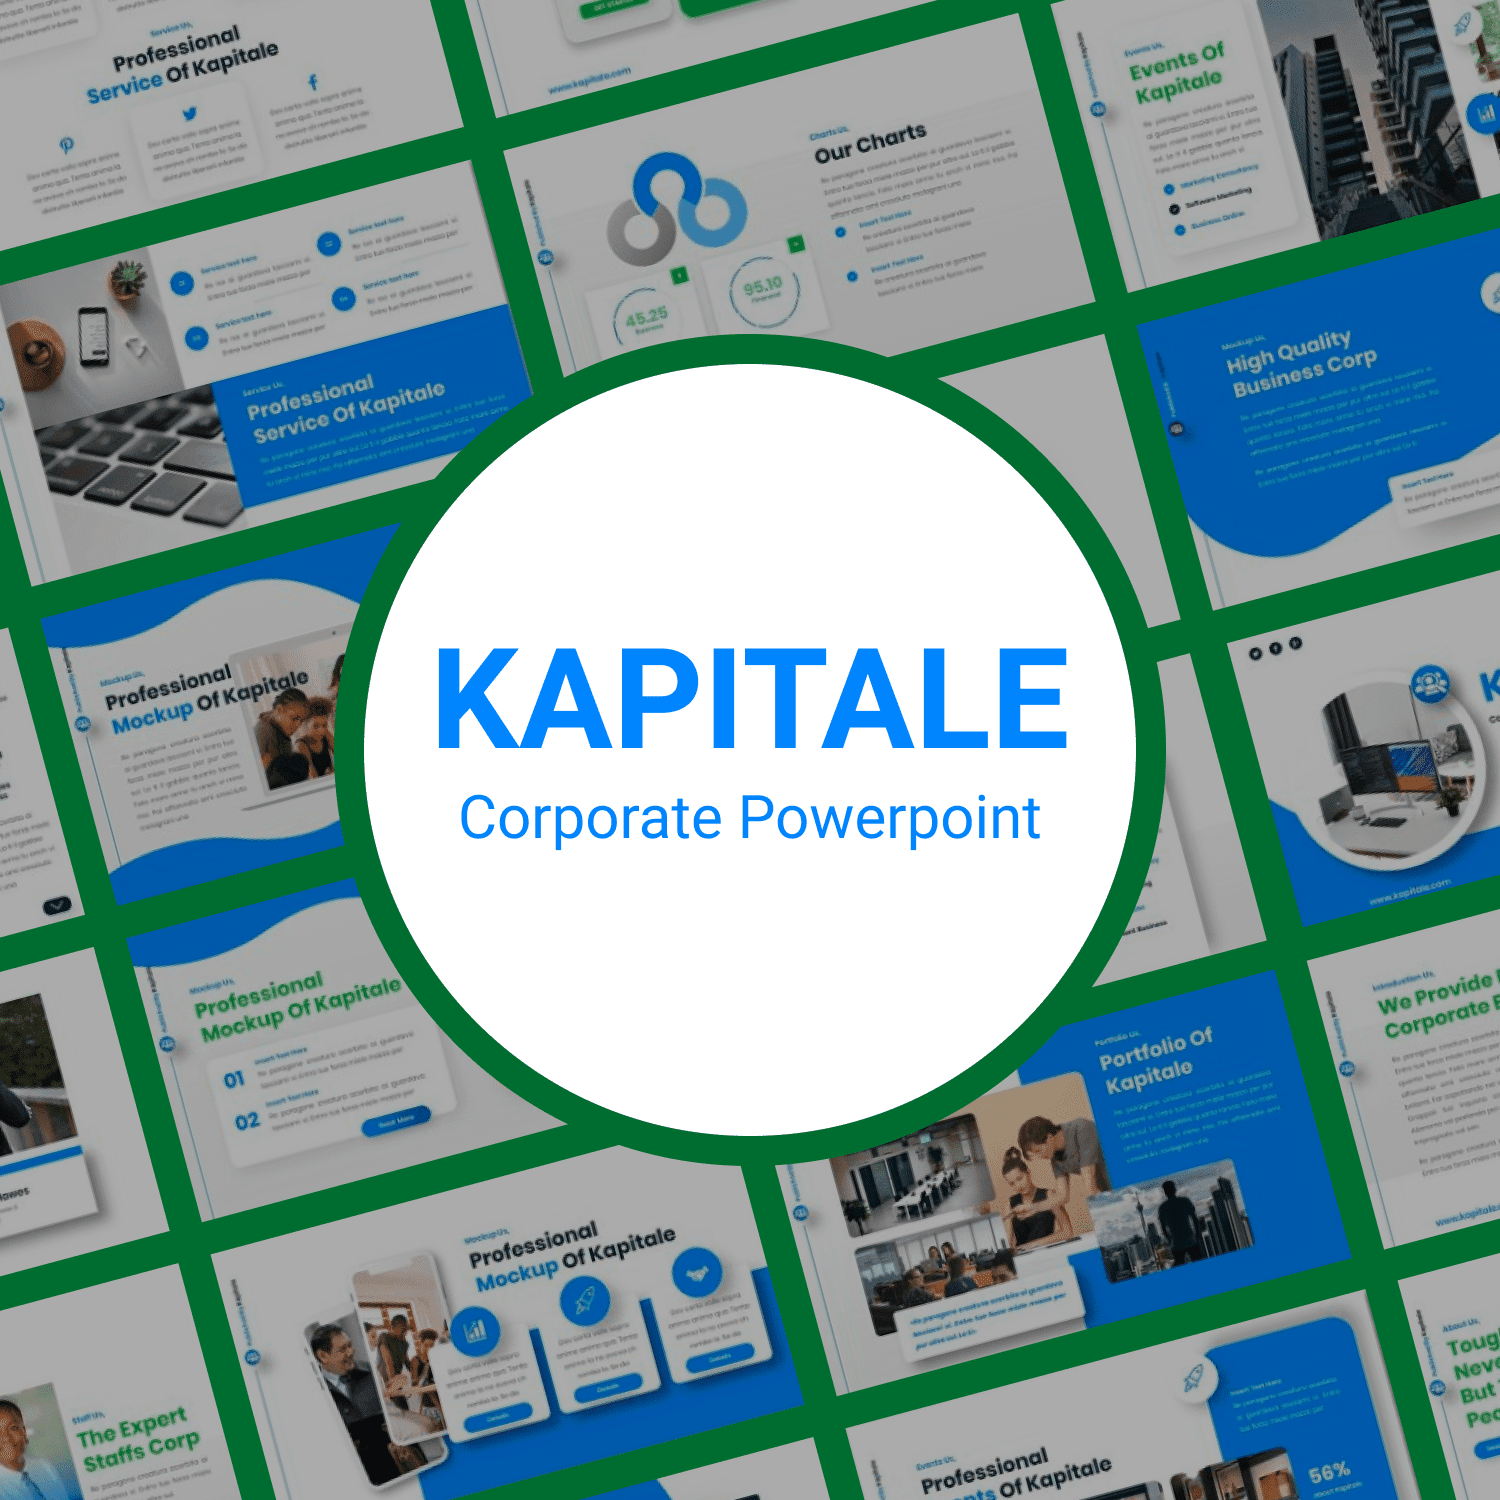 Kapitale Corporate Powerpoint main cover.